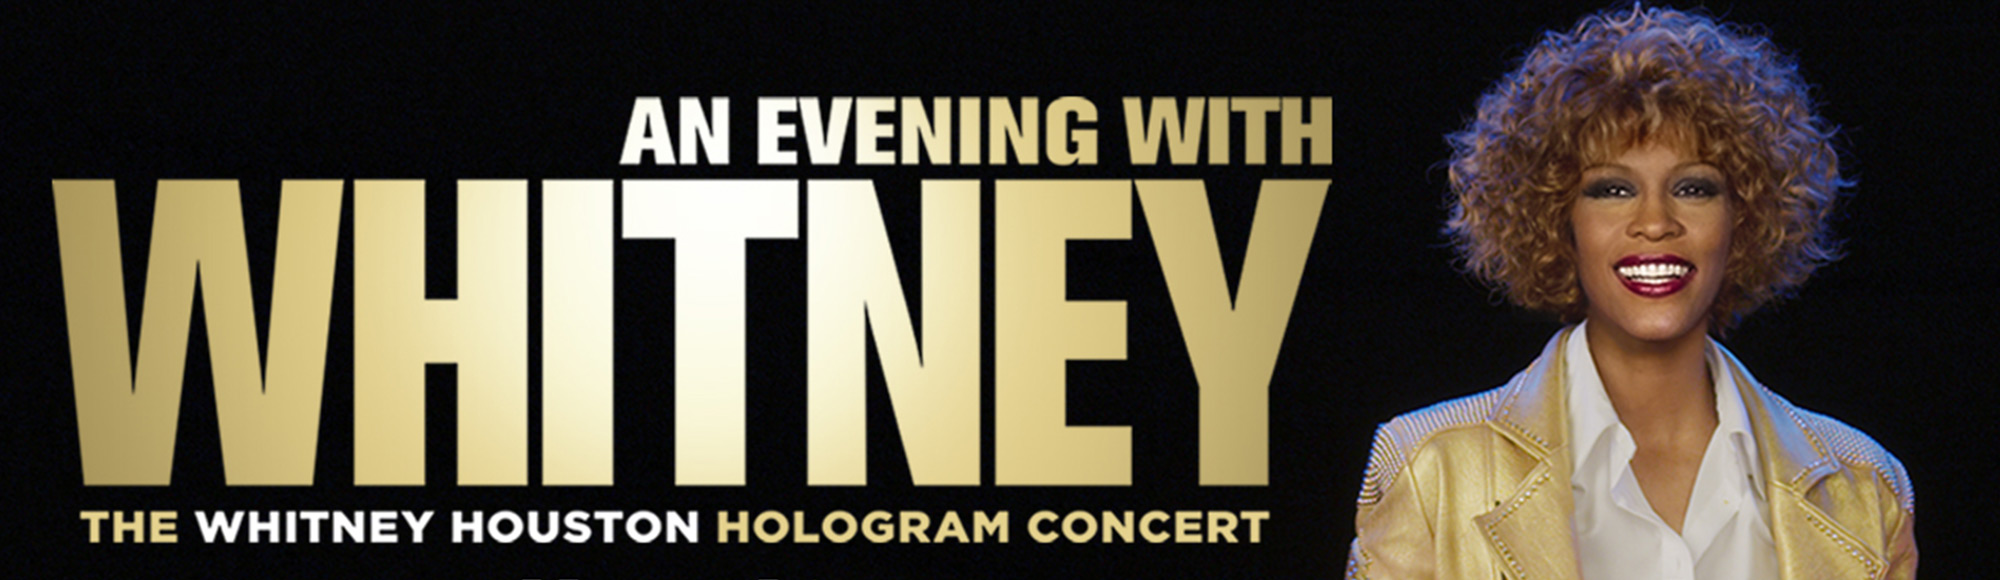 An Evening with Whitney: The Whitney Houston Hologram Concert show